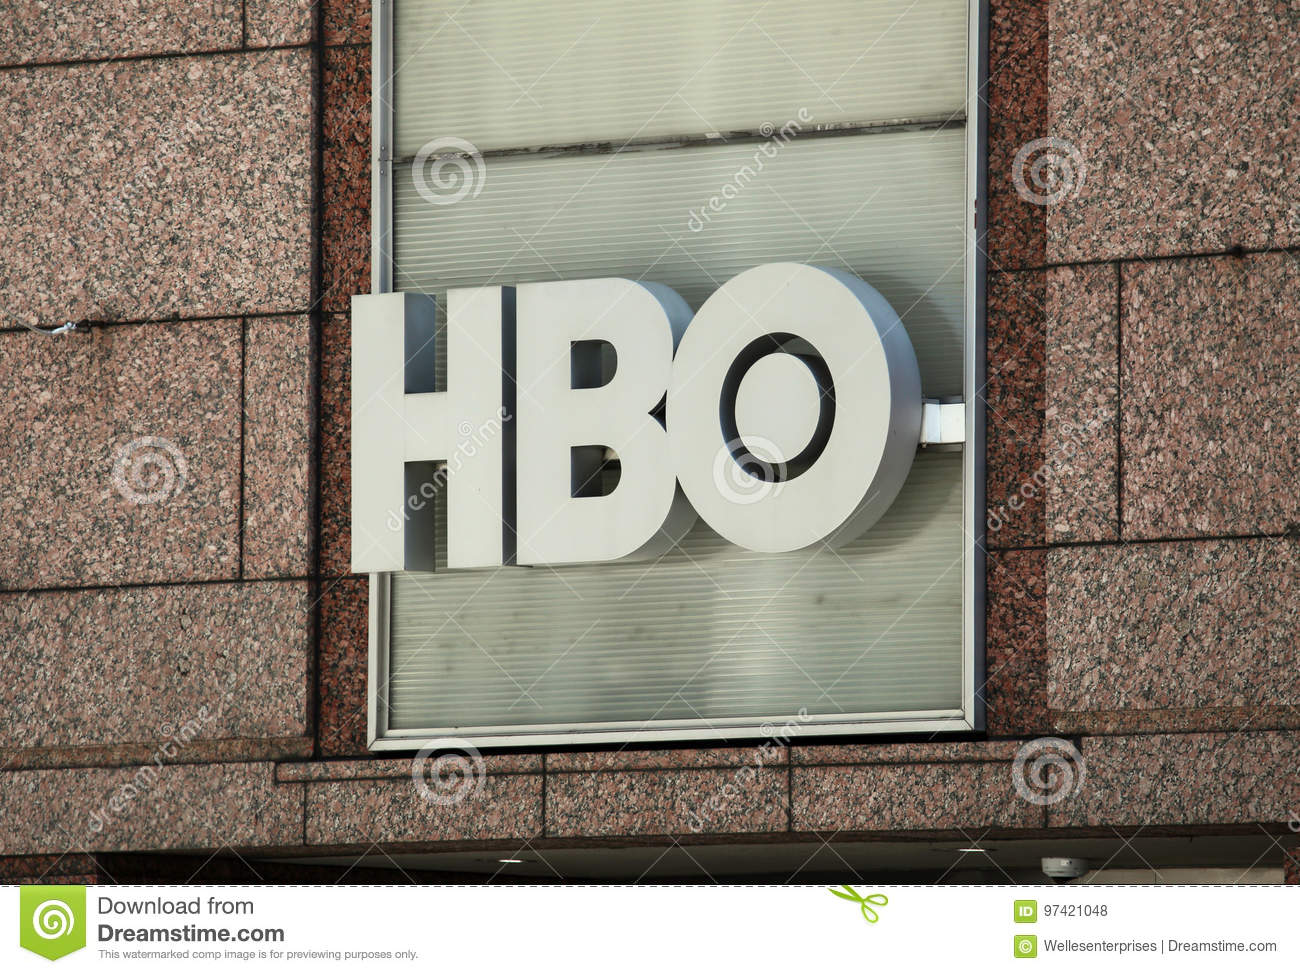 HBO Home Box Office Headquarters